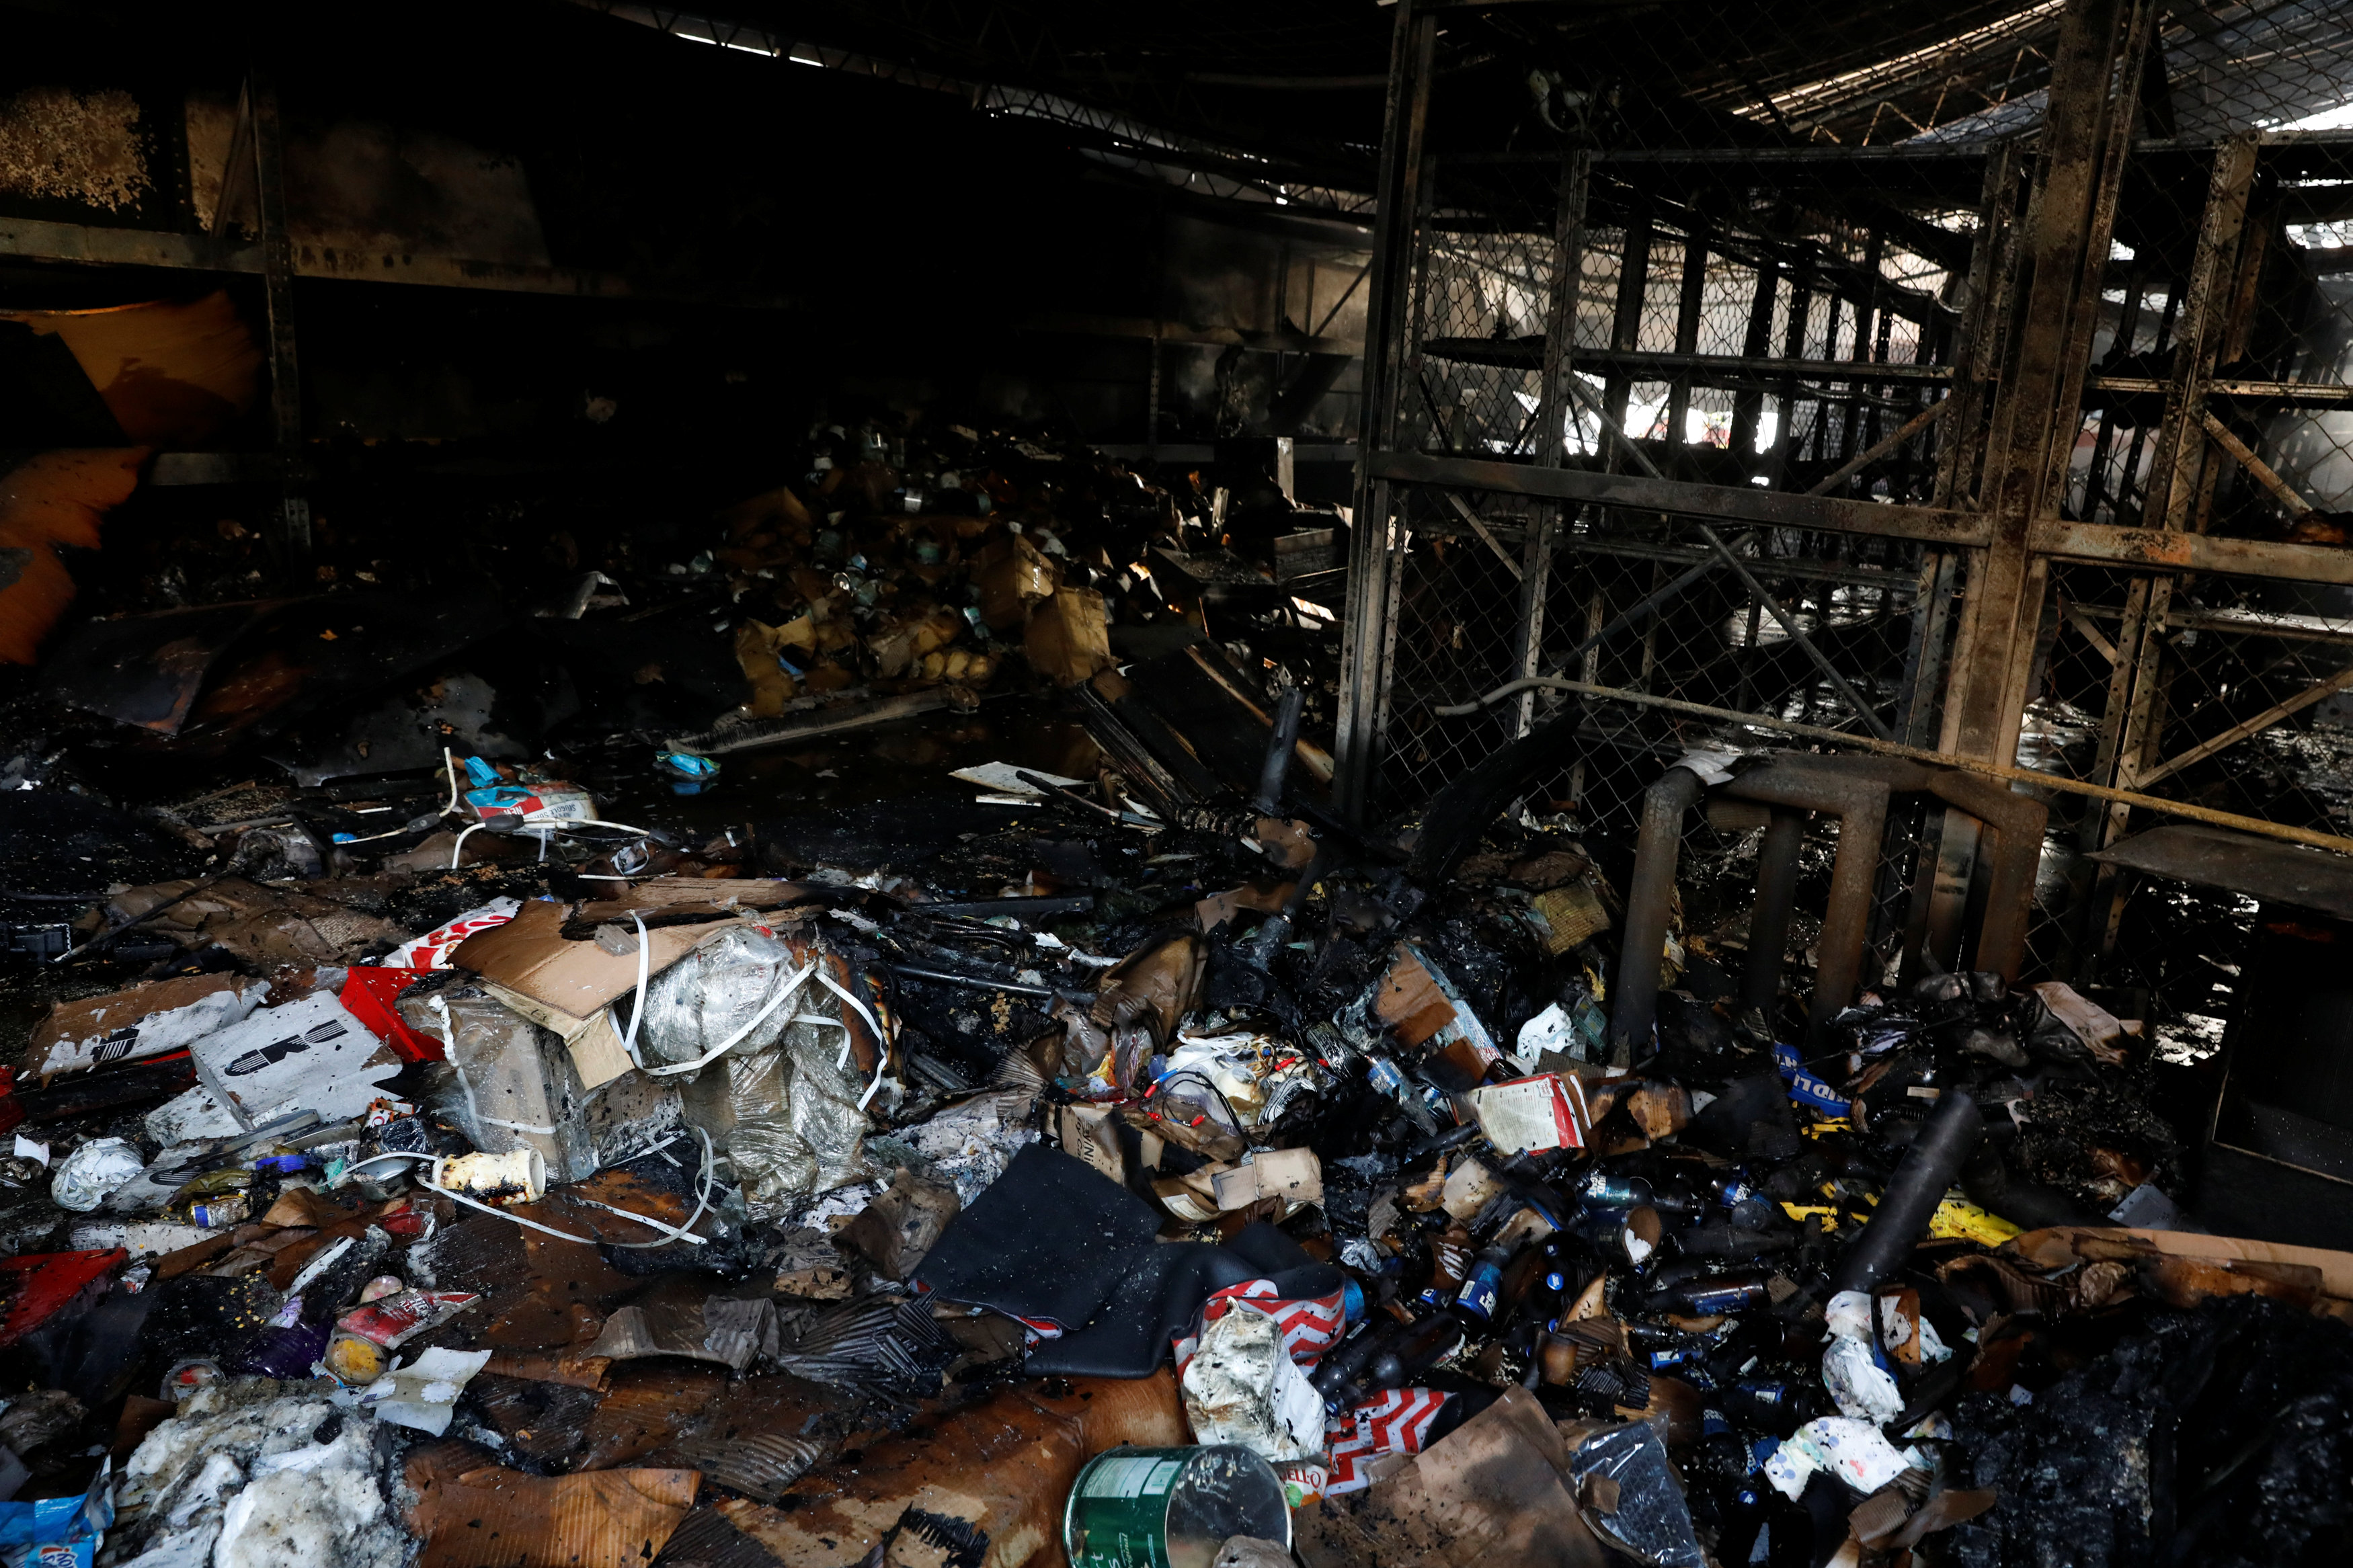 Burned debris are seen in a warehouse in the building where the offices of Venezuelan opposition leader and Governor of Miranda state Henrique Capriles are located, in Caracas, Venezuela, April 8, 2017. REUTERS/Carlos Garcia Rawlins